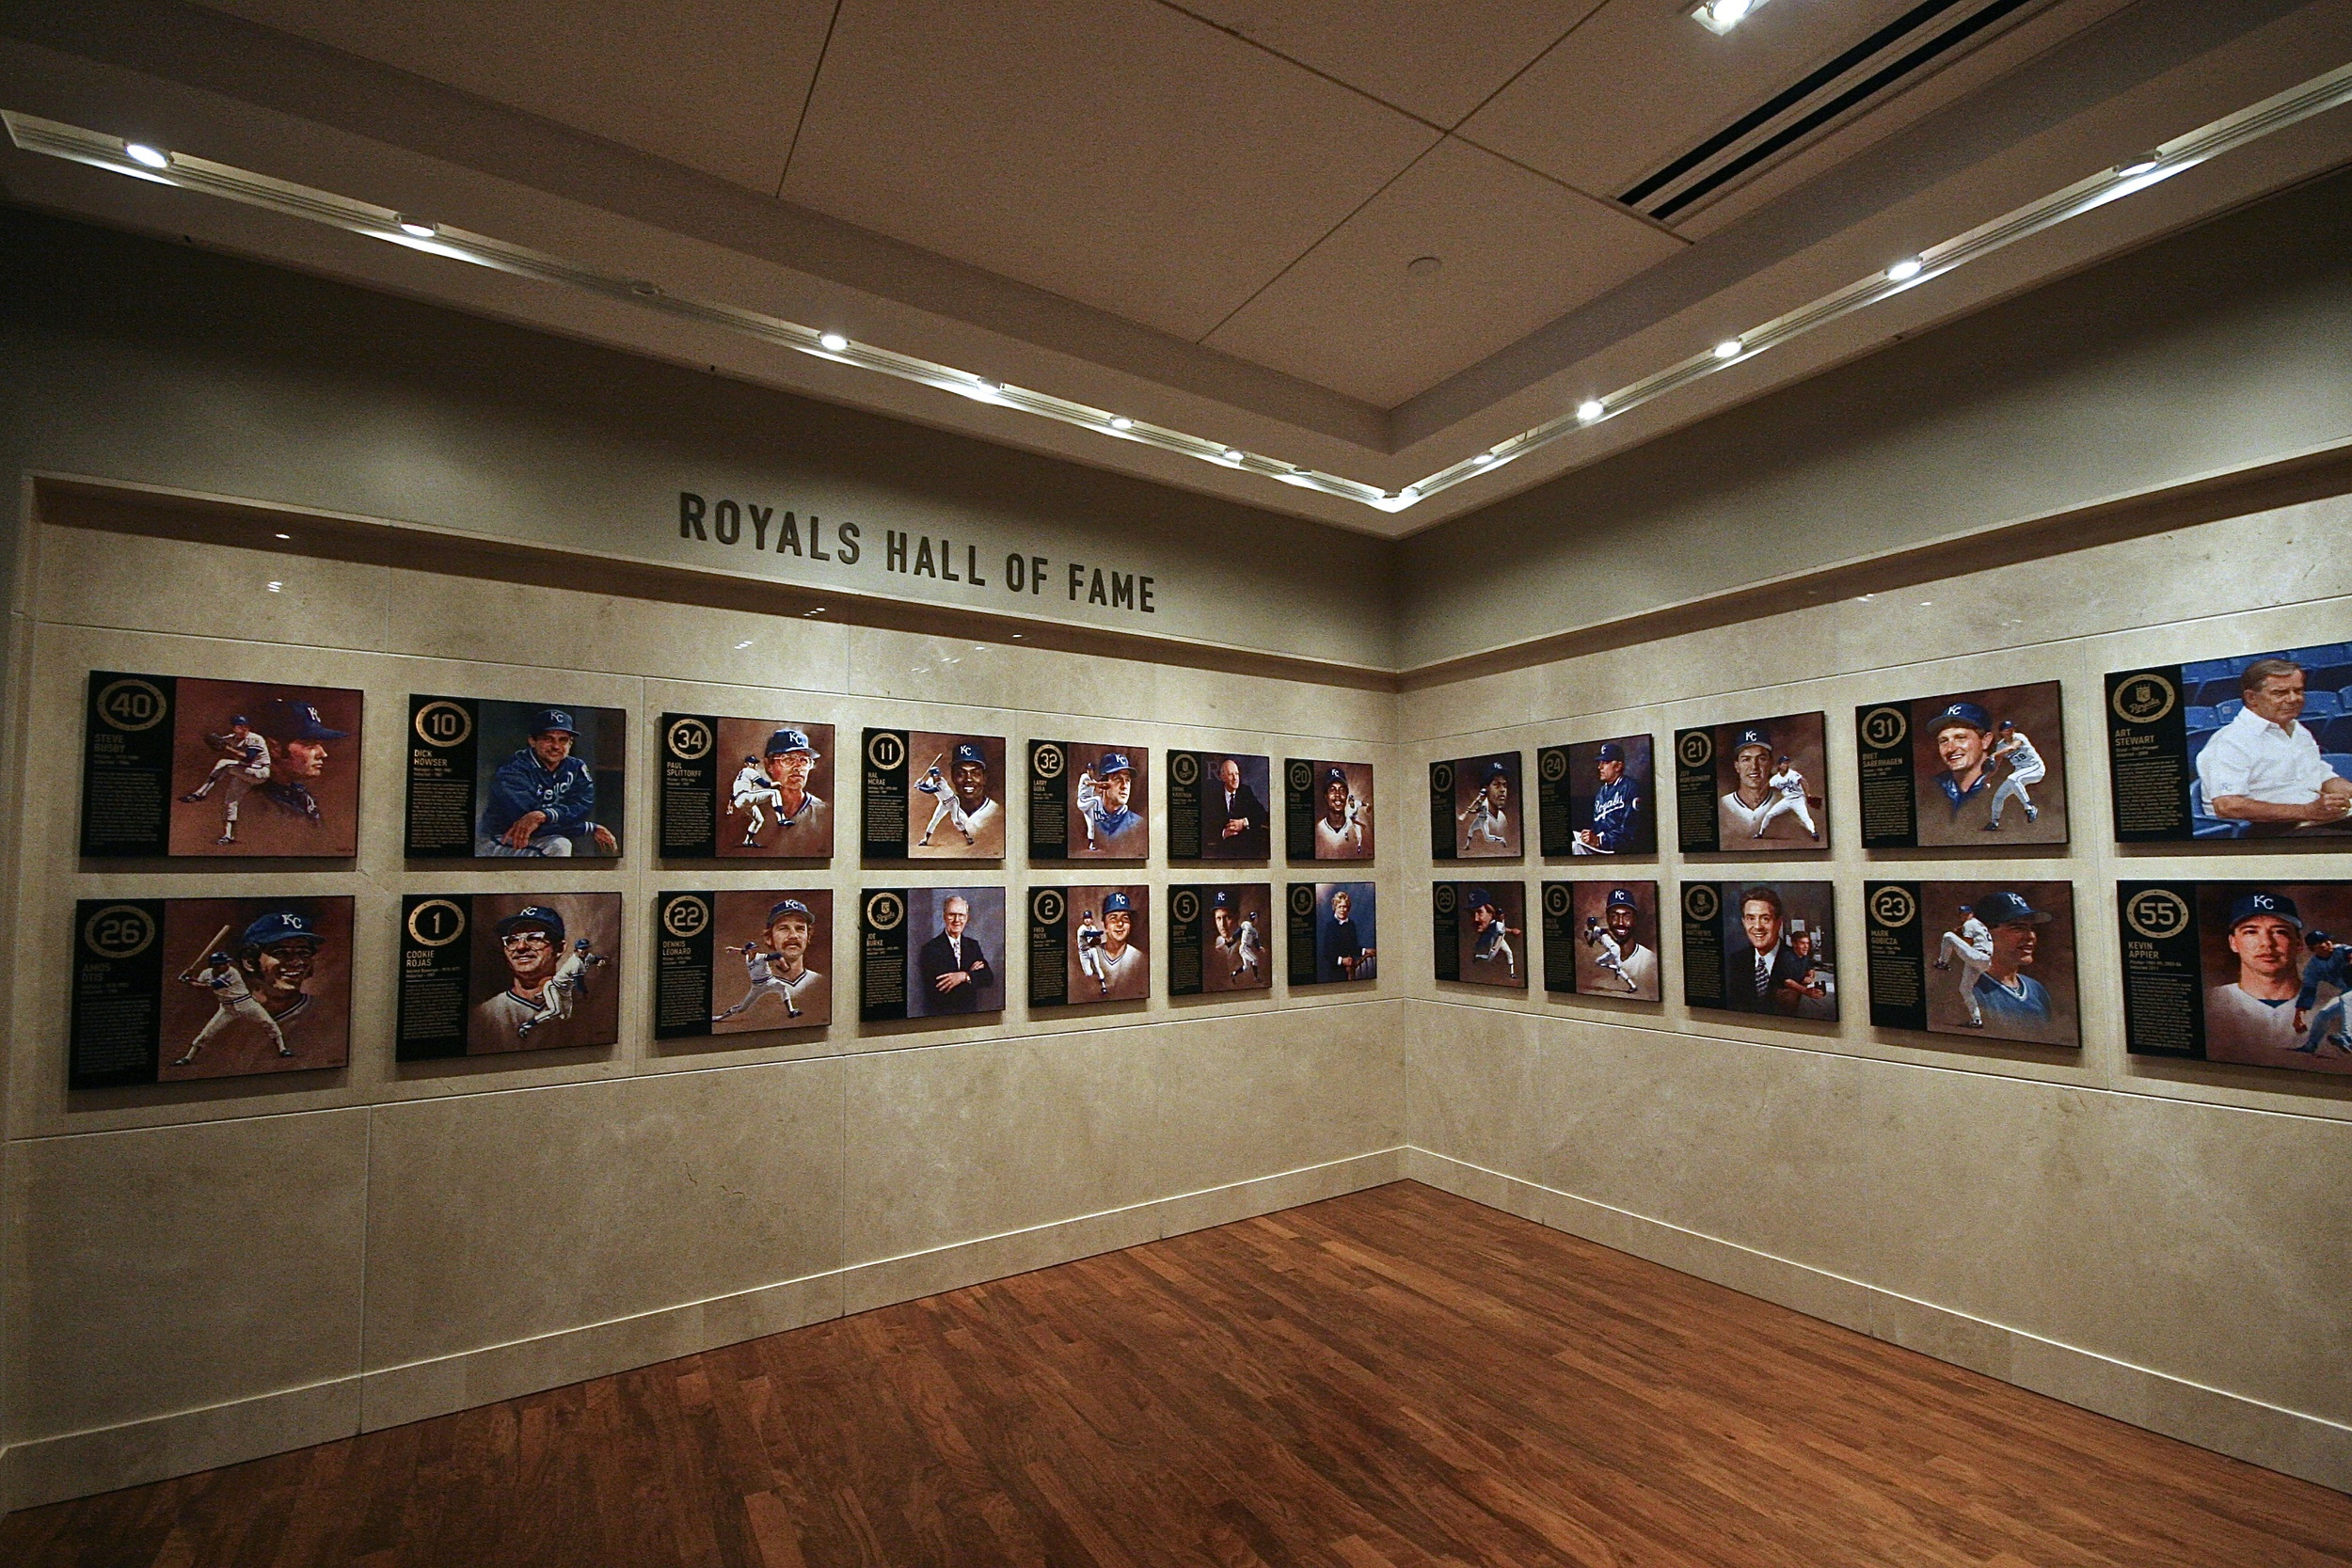 Royals wall of fame